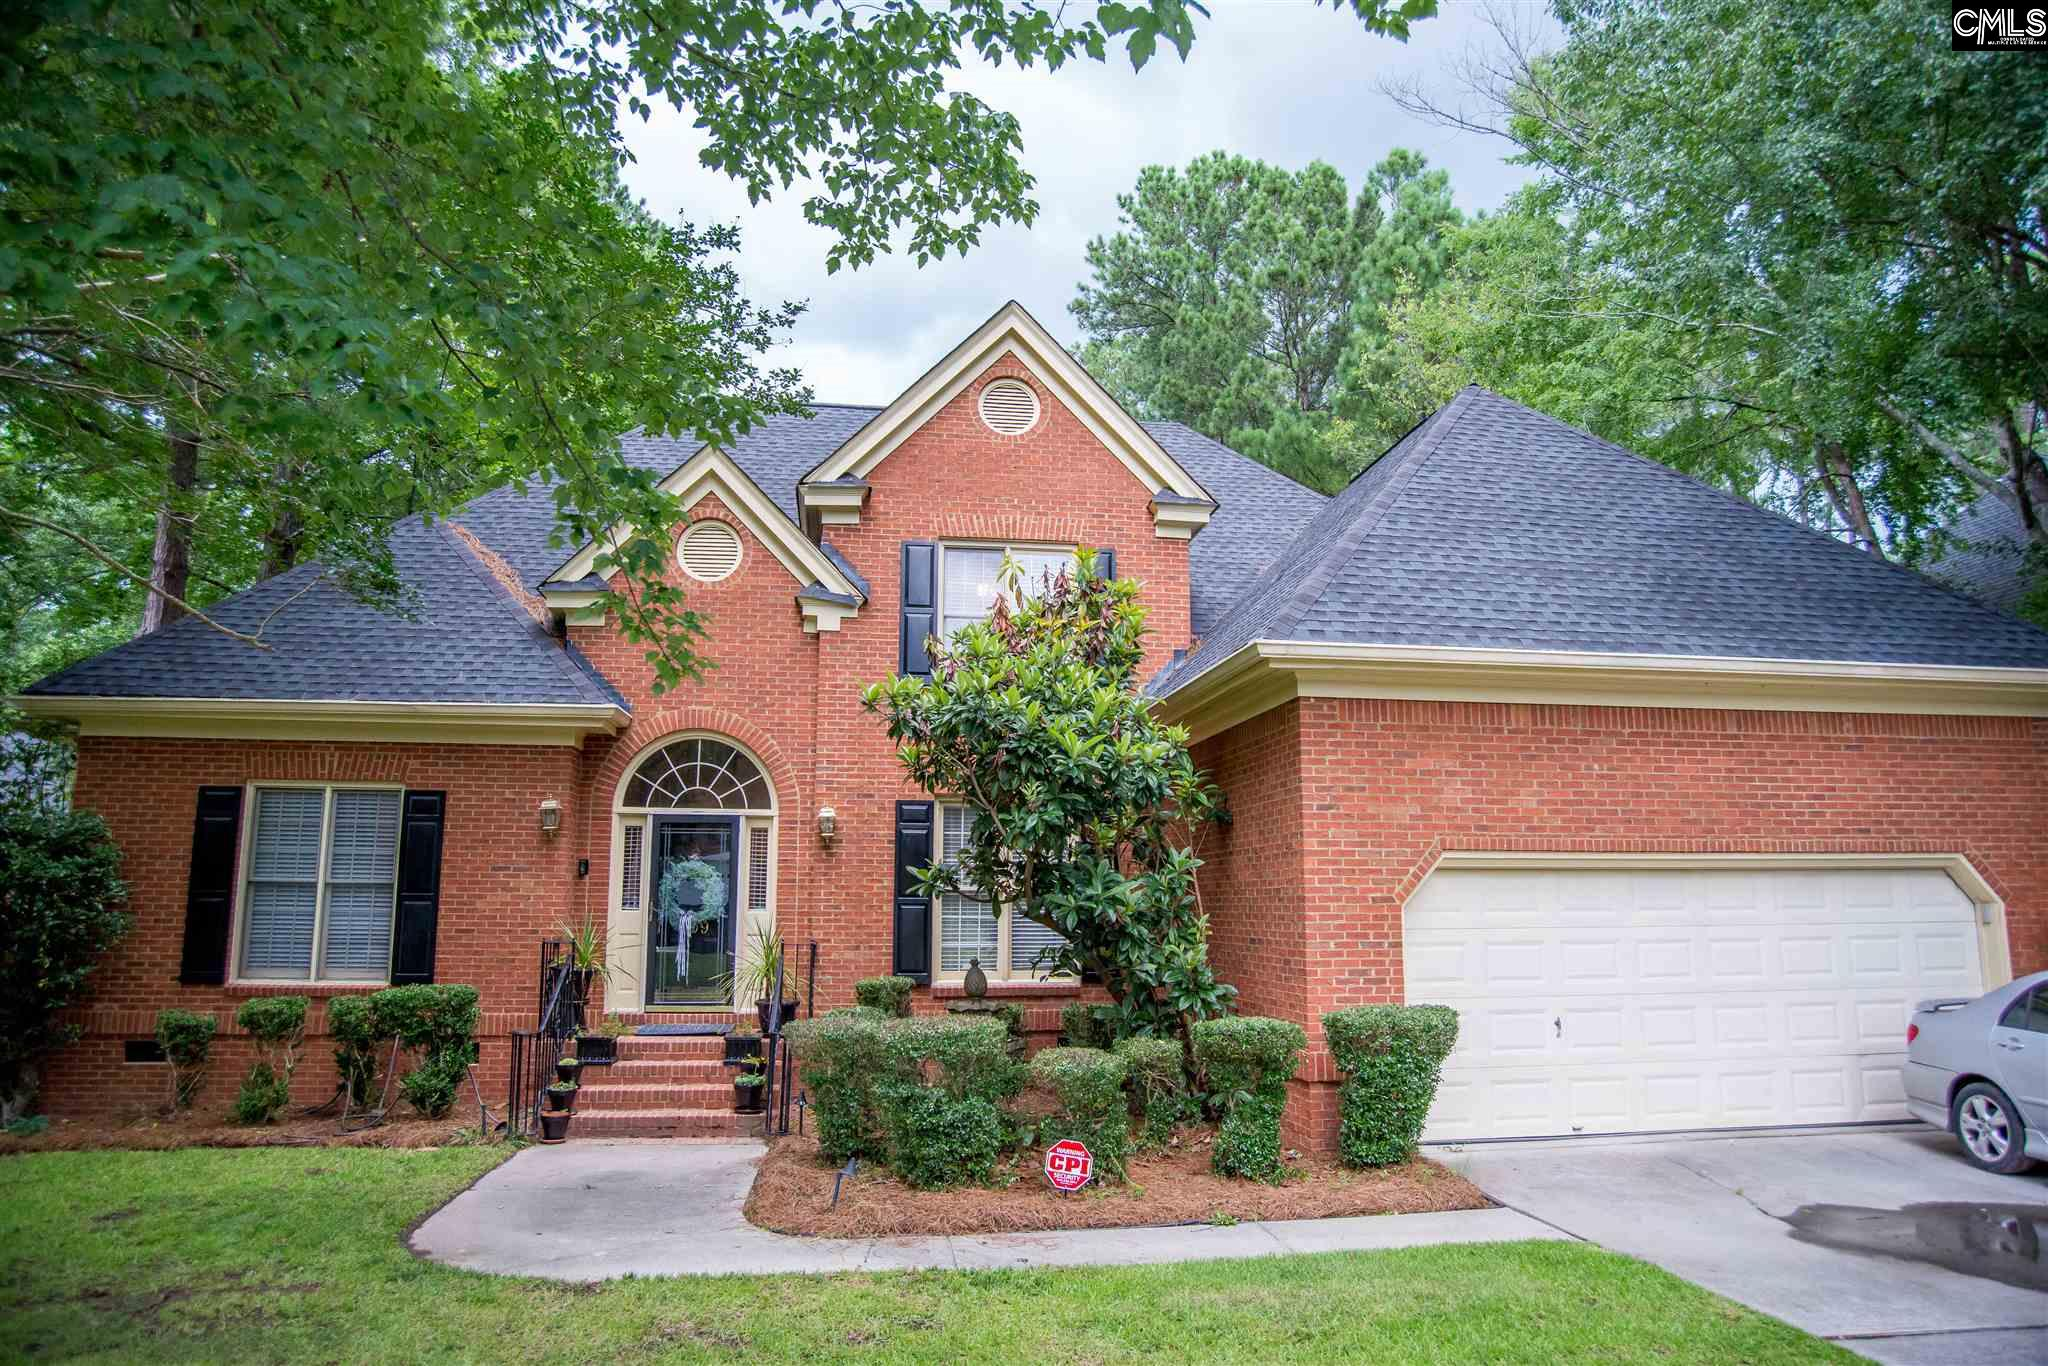 109 Hollingwood Columbia, SC 29223